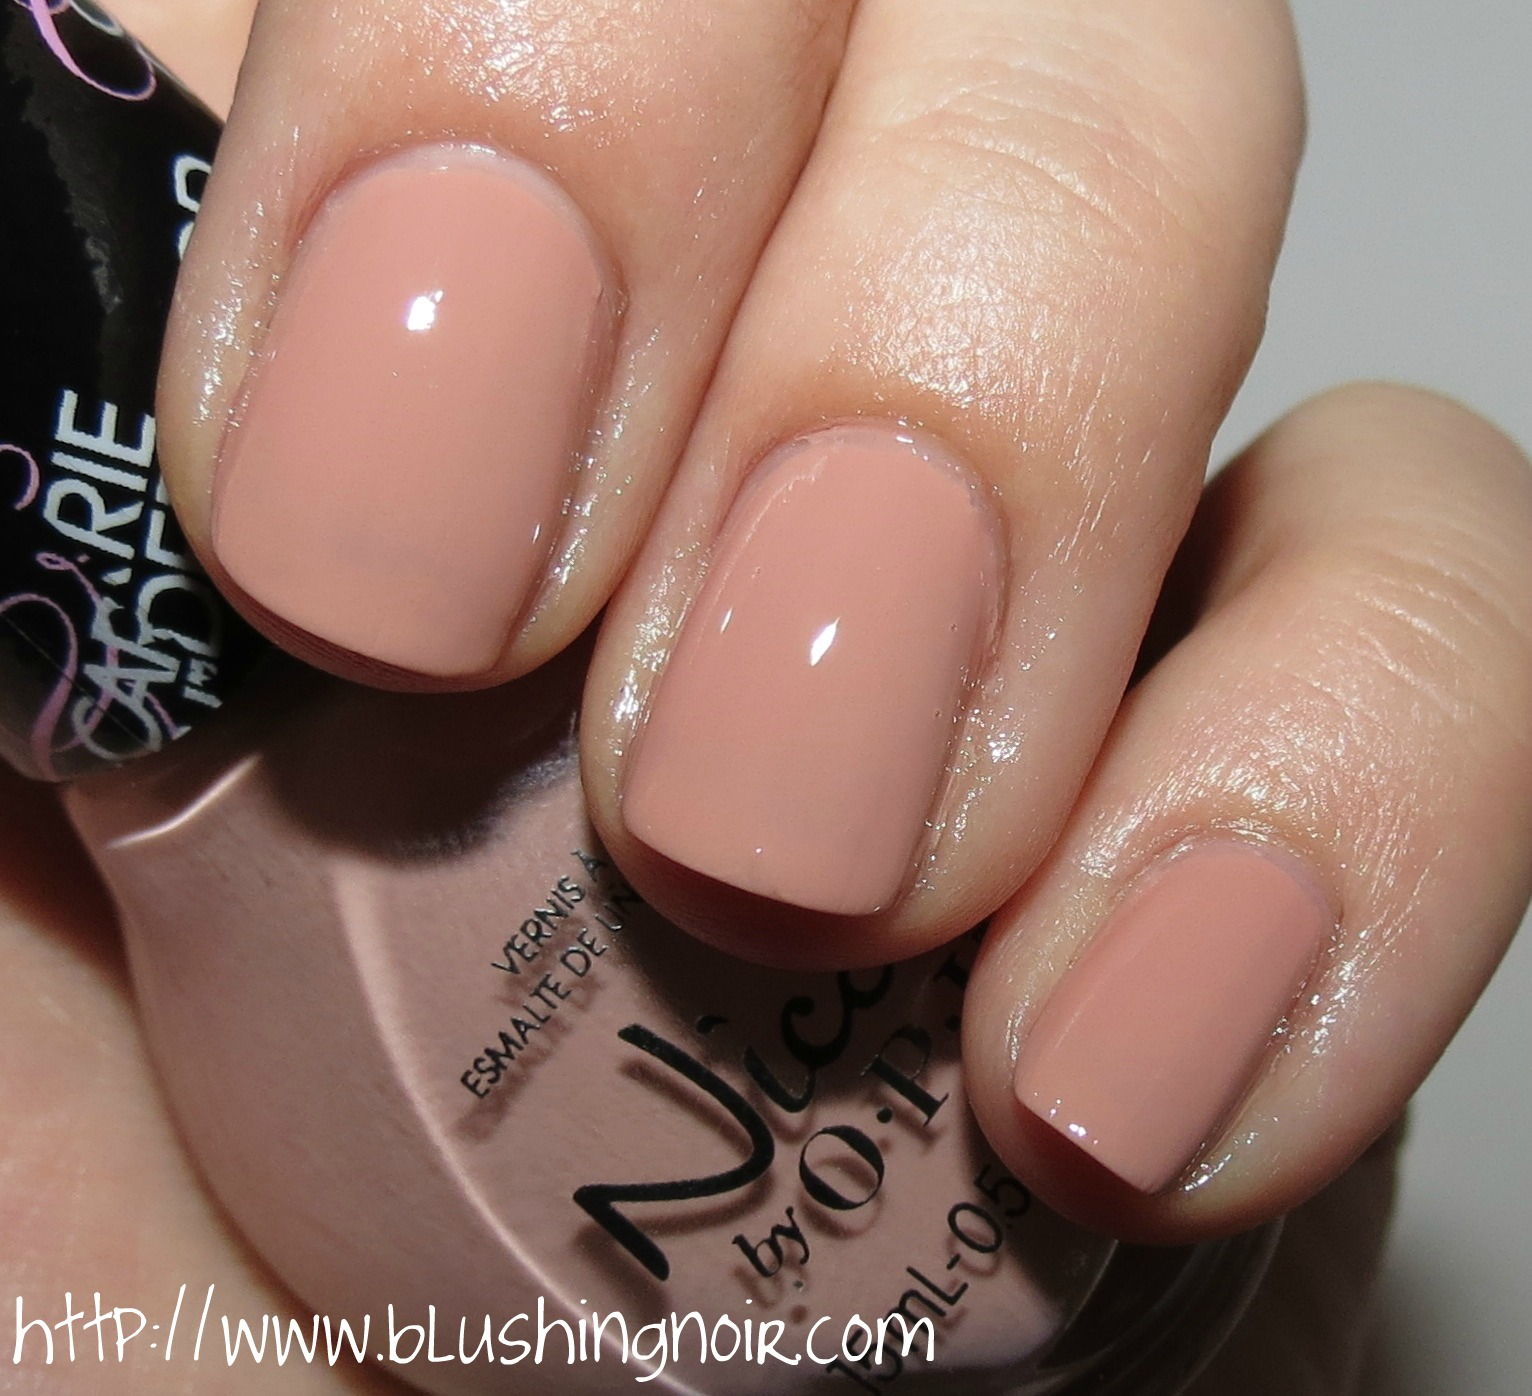 Nicole by OPI Southern Charm Nail Polish Swatches - Blushing Noir